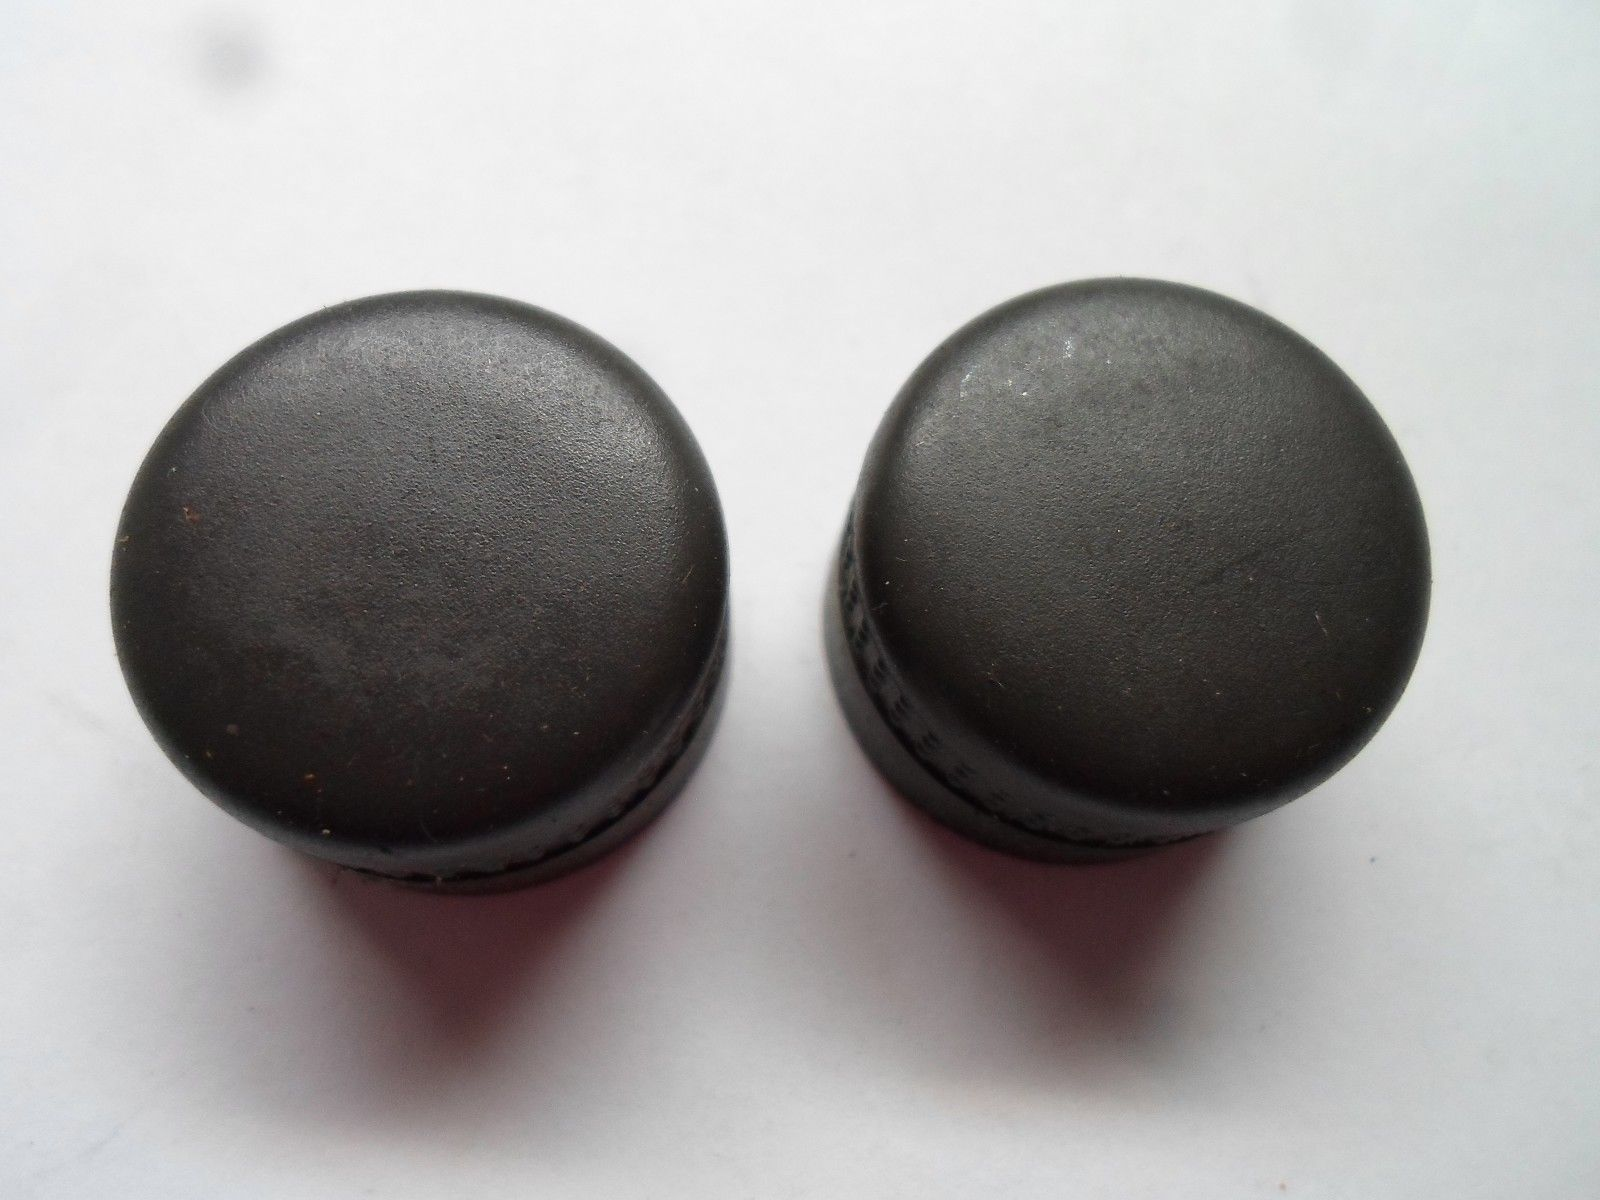 96 - 05 CADILLAC SEVILLE AC HEATER CLIMATE CONTROL KNOB SET OEM FREE SHIPPING!